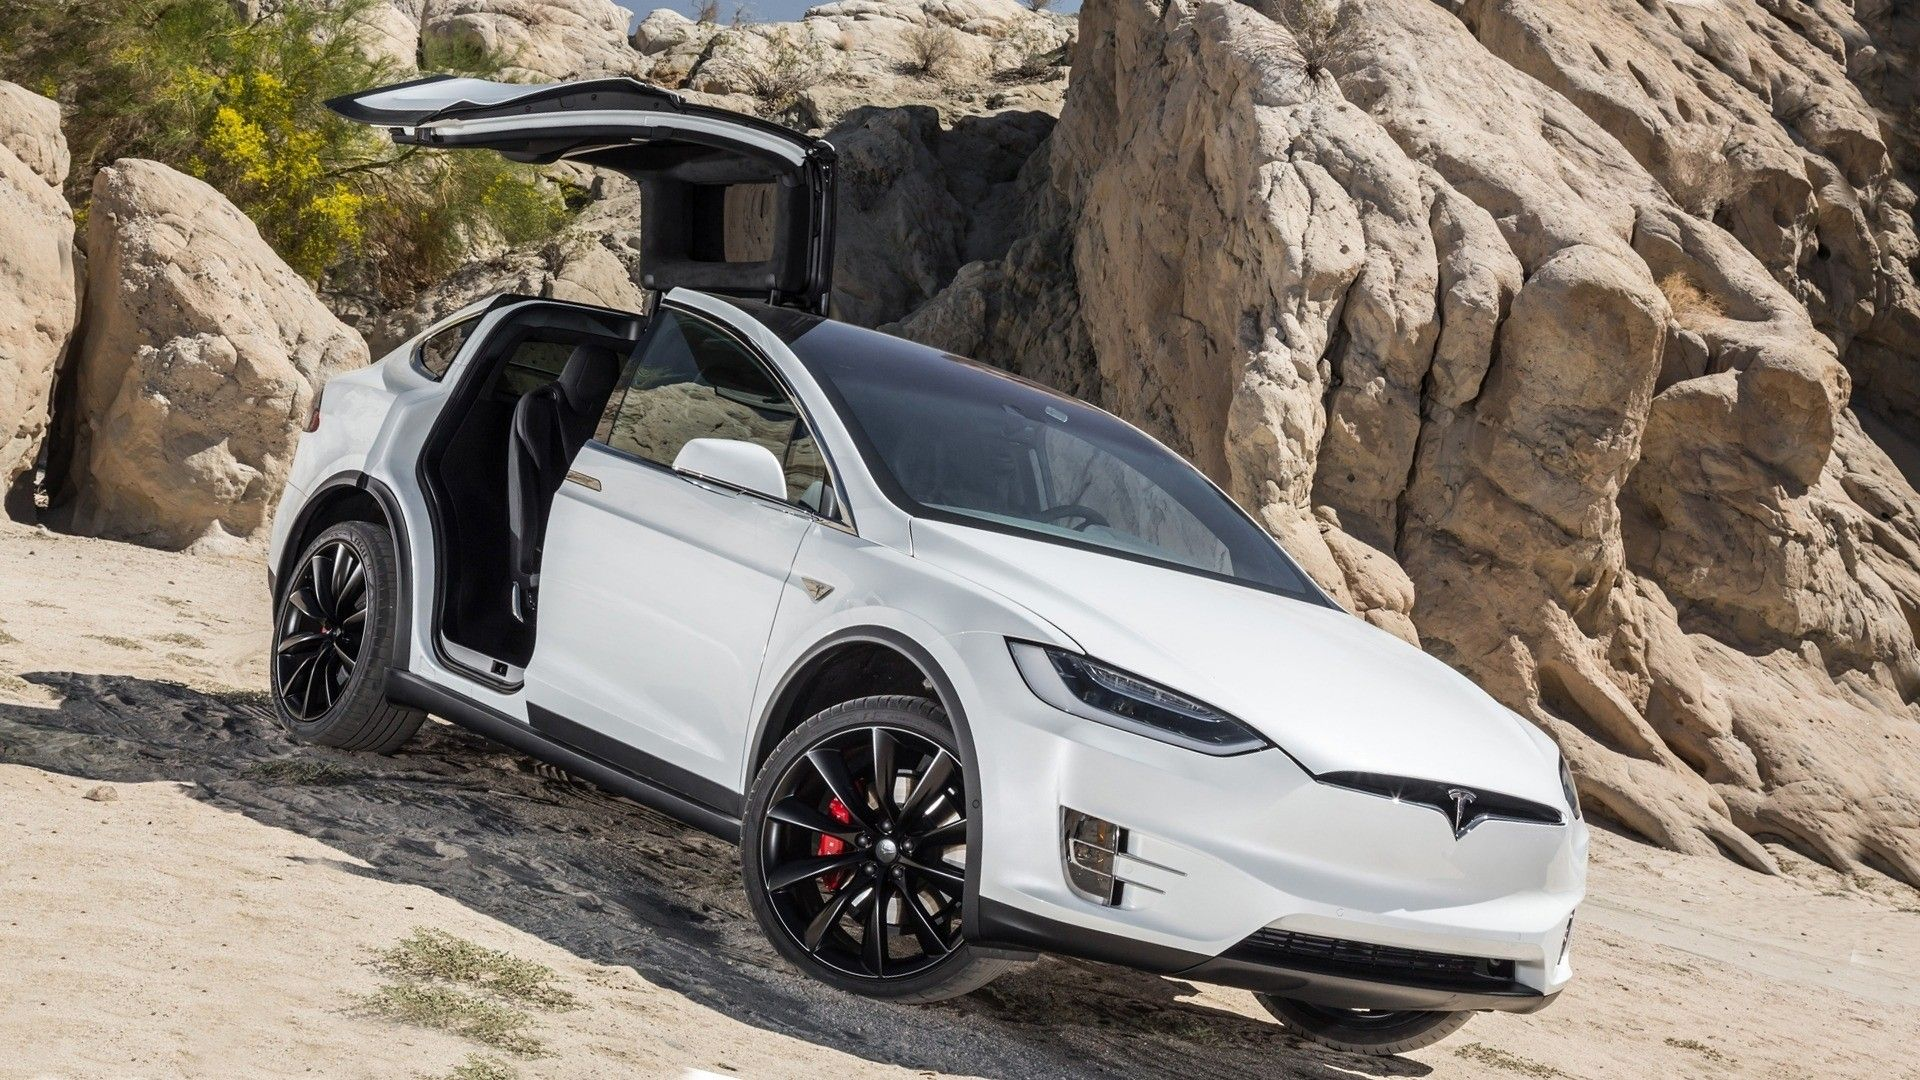 2019 Tesla Model X Redesign Price And Review Tesla Model X Tesla Model Tesla